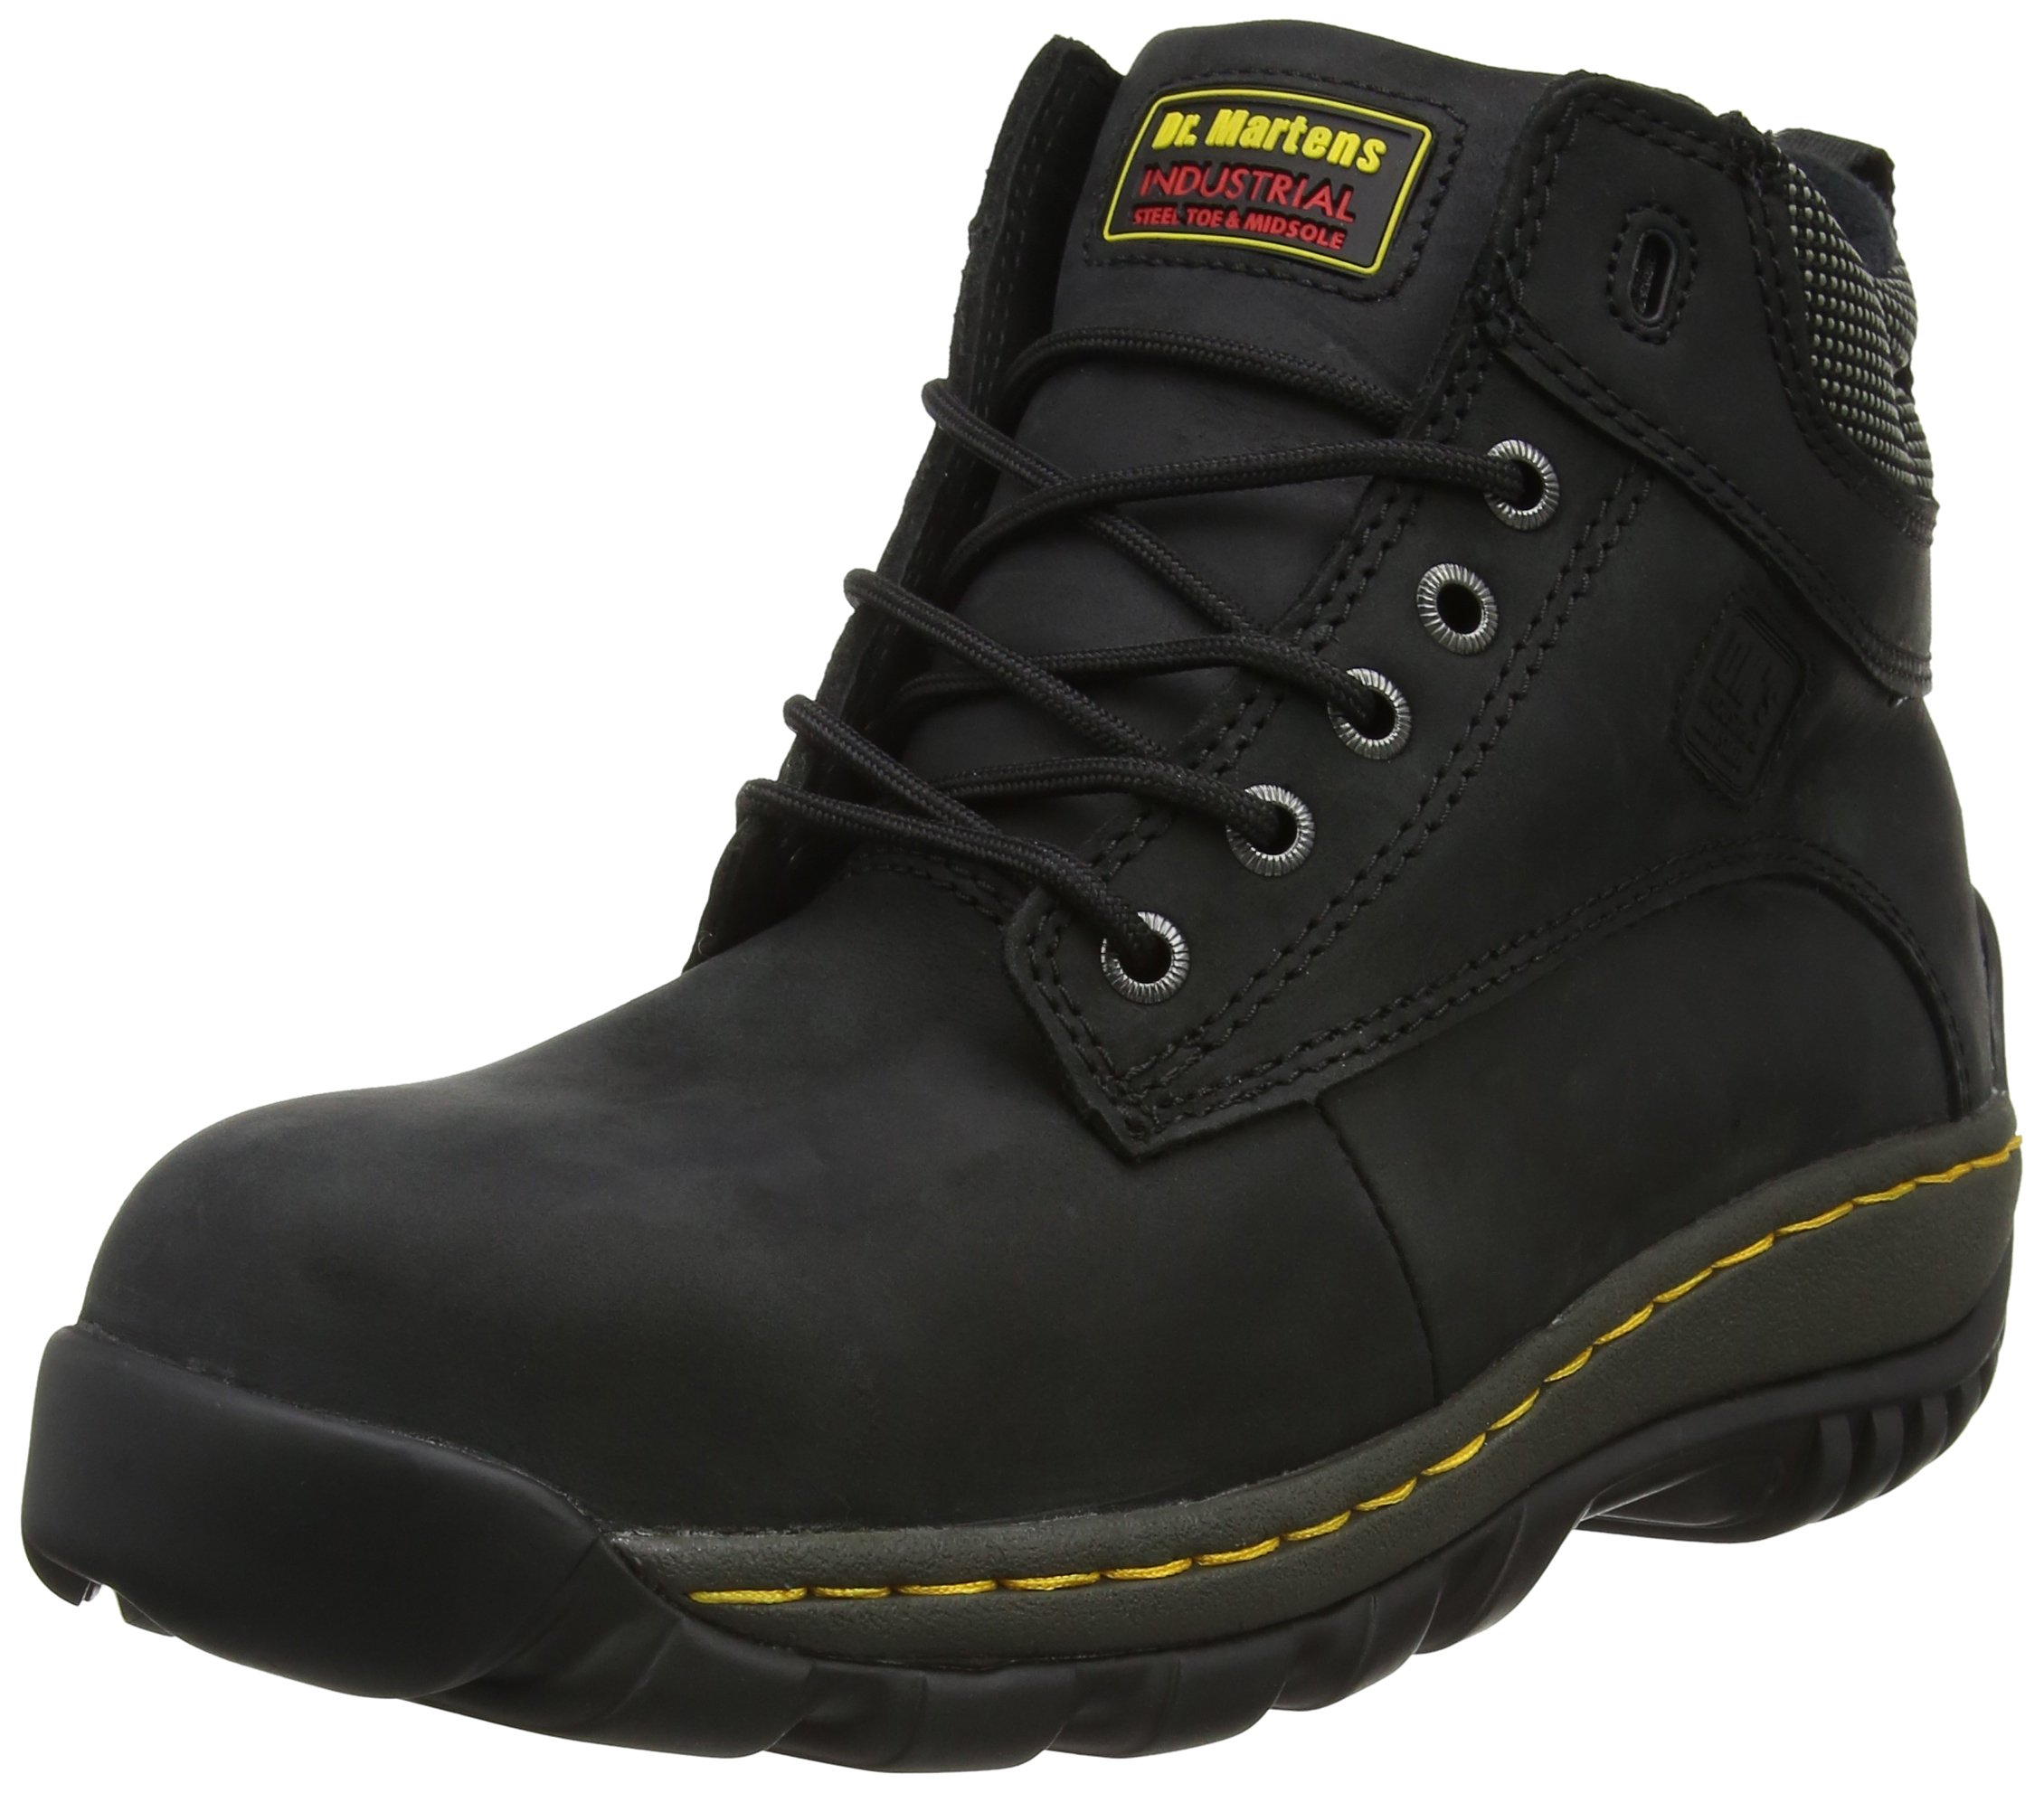 Dr Martens Unisex Adults Hynine St Safety Shoes